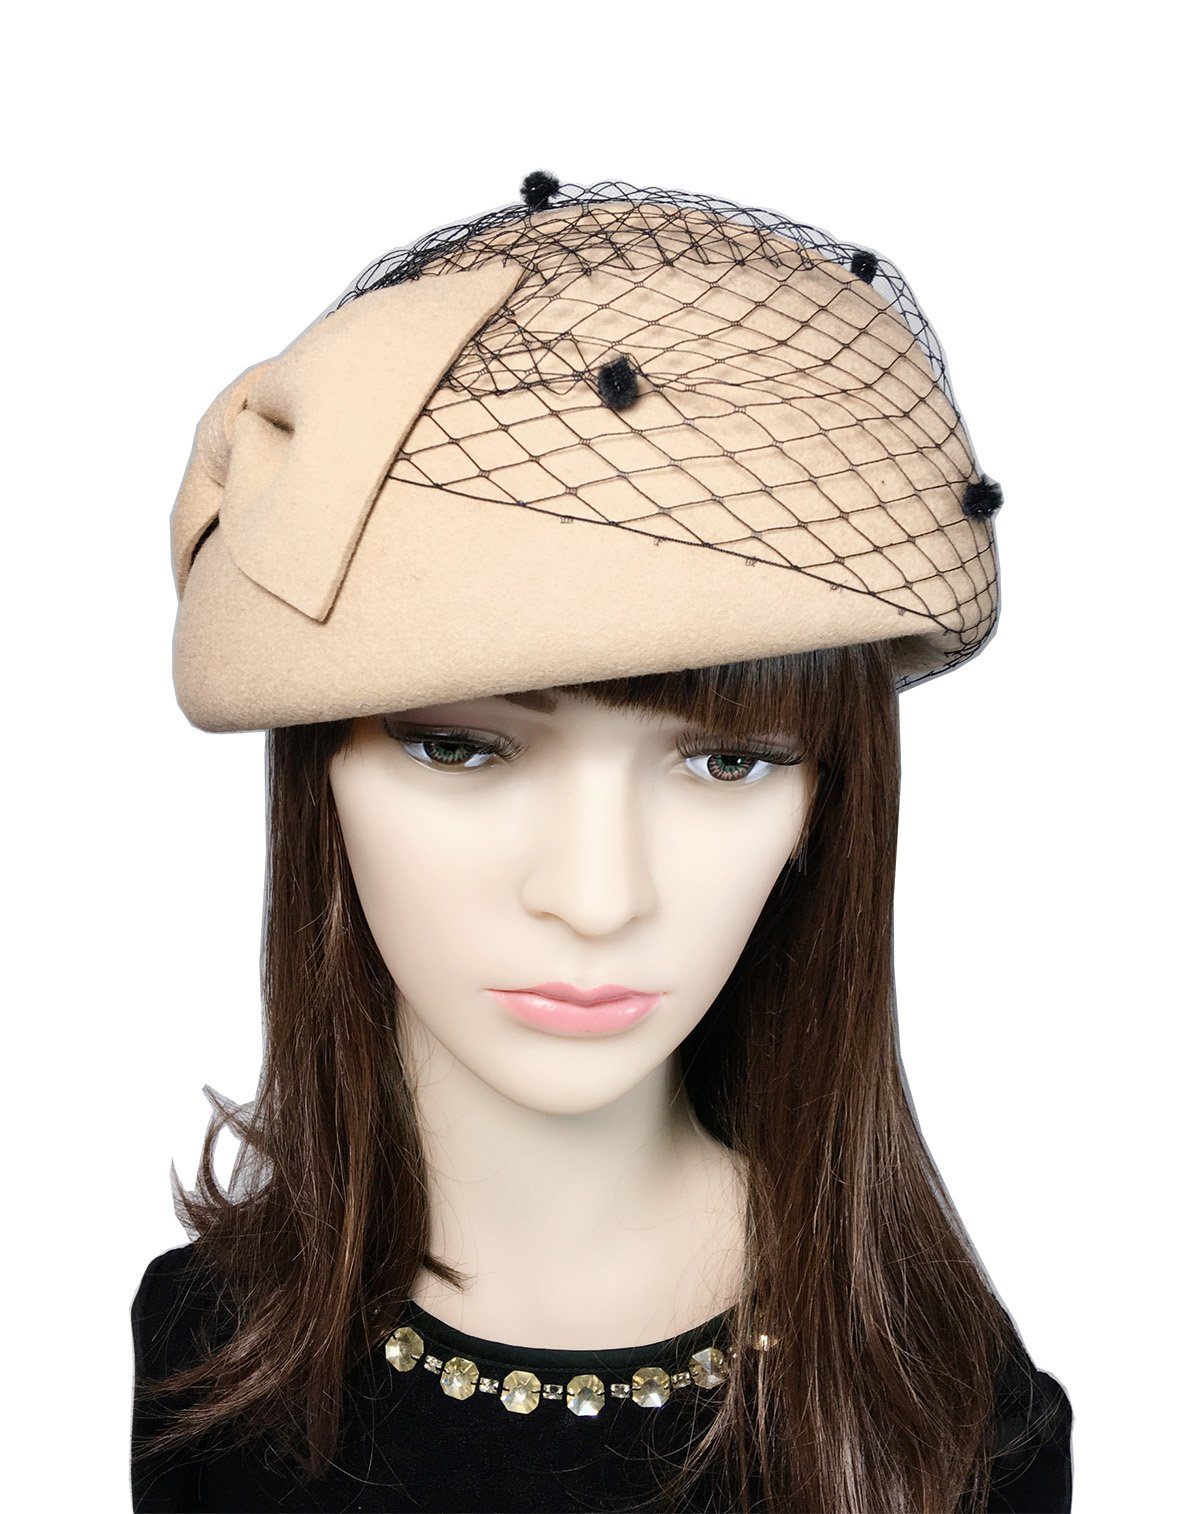 YSJOY Womens Retro Bowknot Dot Veil Mesh 100% Wool Fascinator British Style Derby Hat Wedding Tea Party Hair Accessory Beret Caps Light Tan by YSJOY Accessory